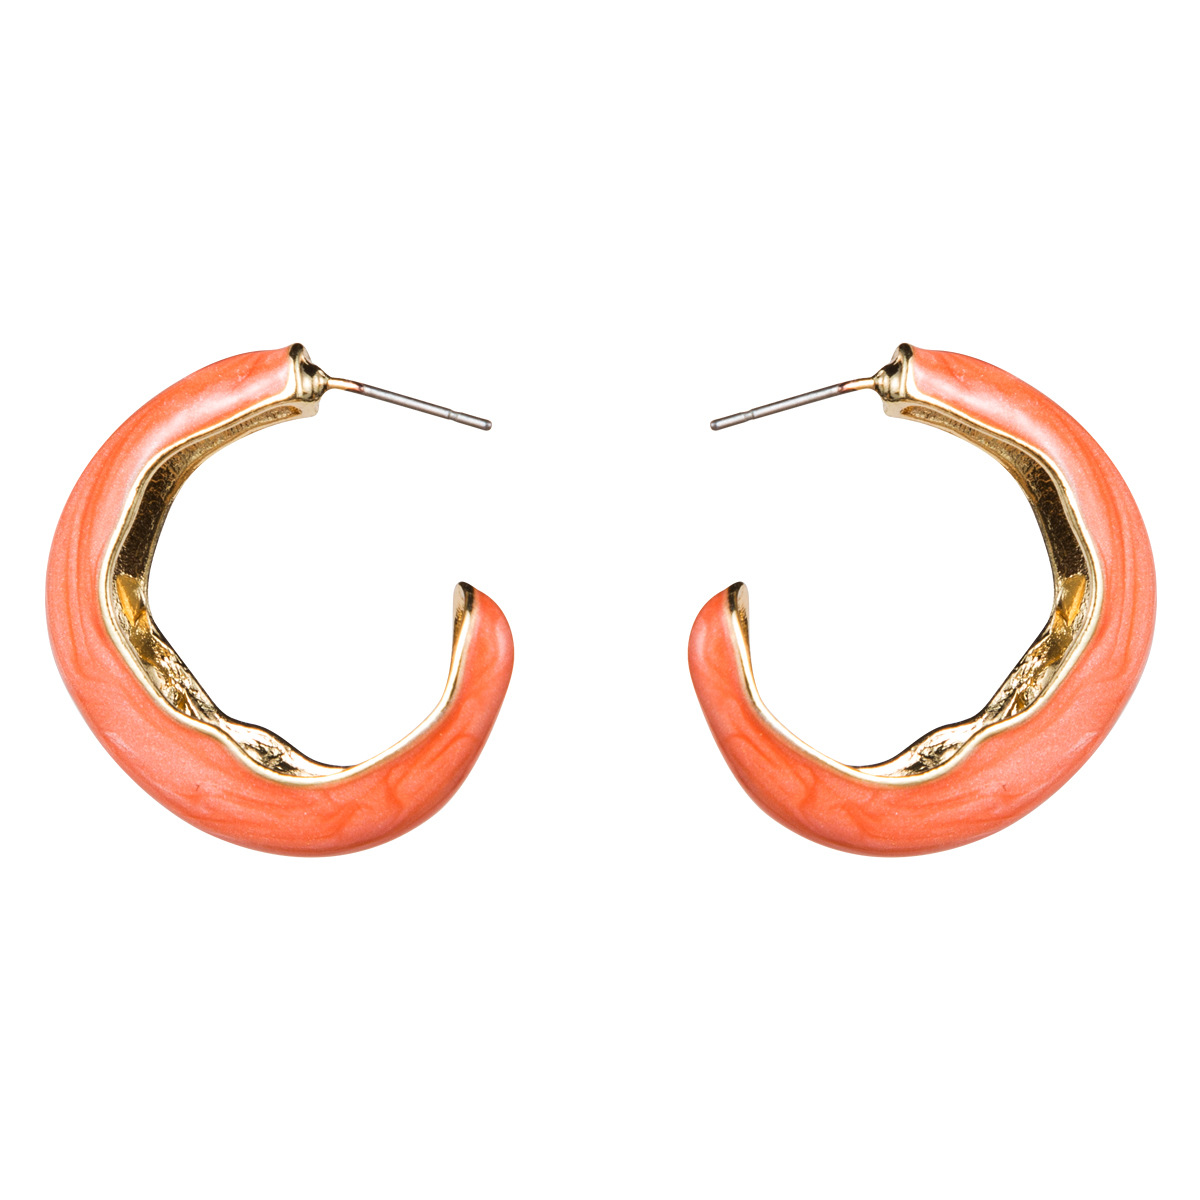 WENZHE Stylish Women's Zinc Alloy Gold Plated Half Circle Custom Enamel Earrings Featured Image